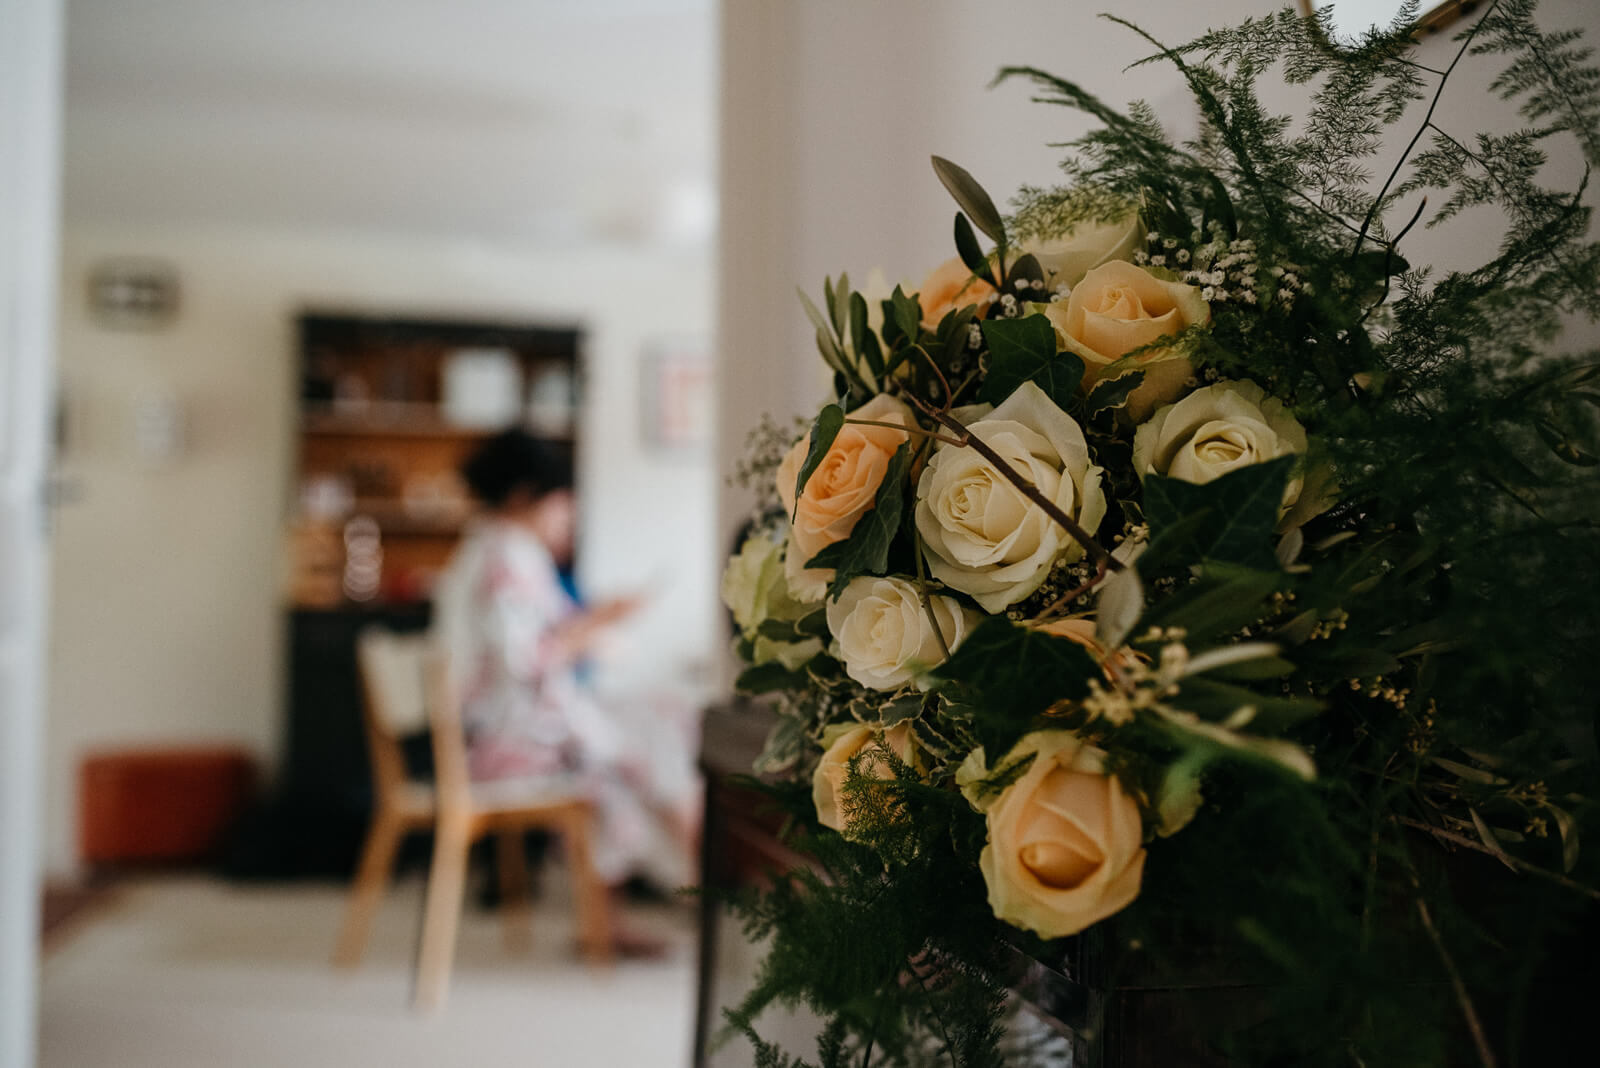 brides rustic bouquet of peach and cream roses, fern and foliage